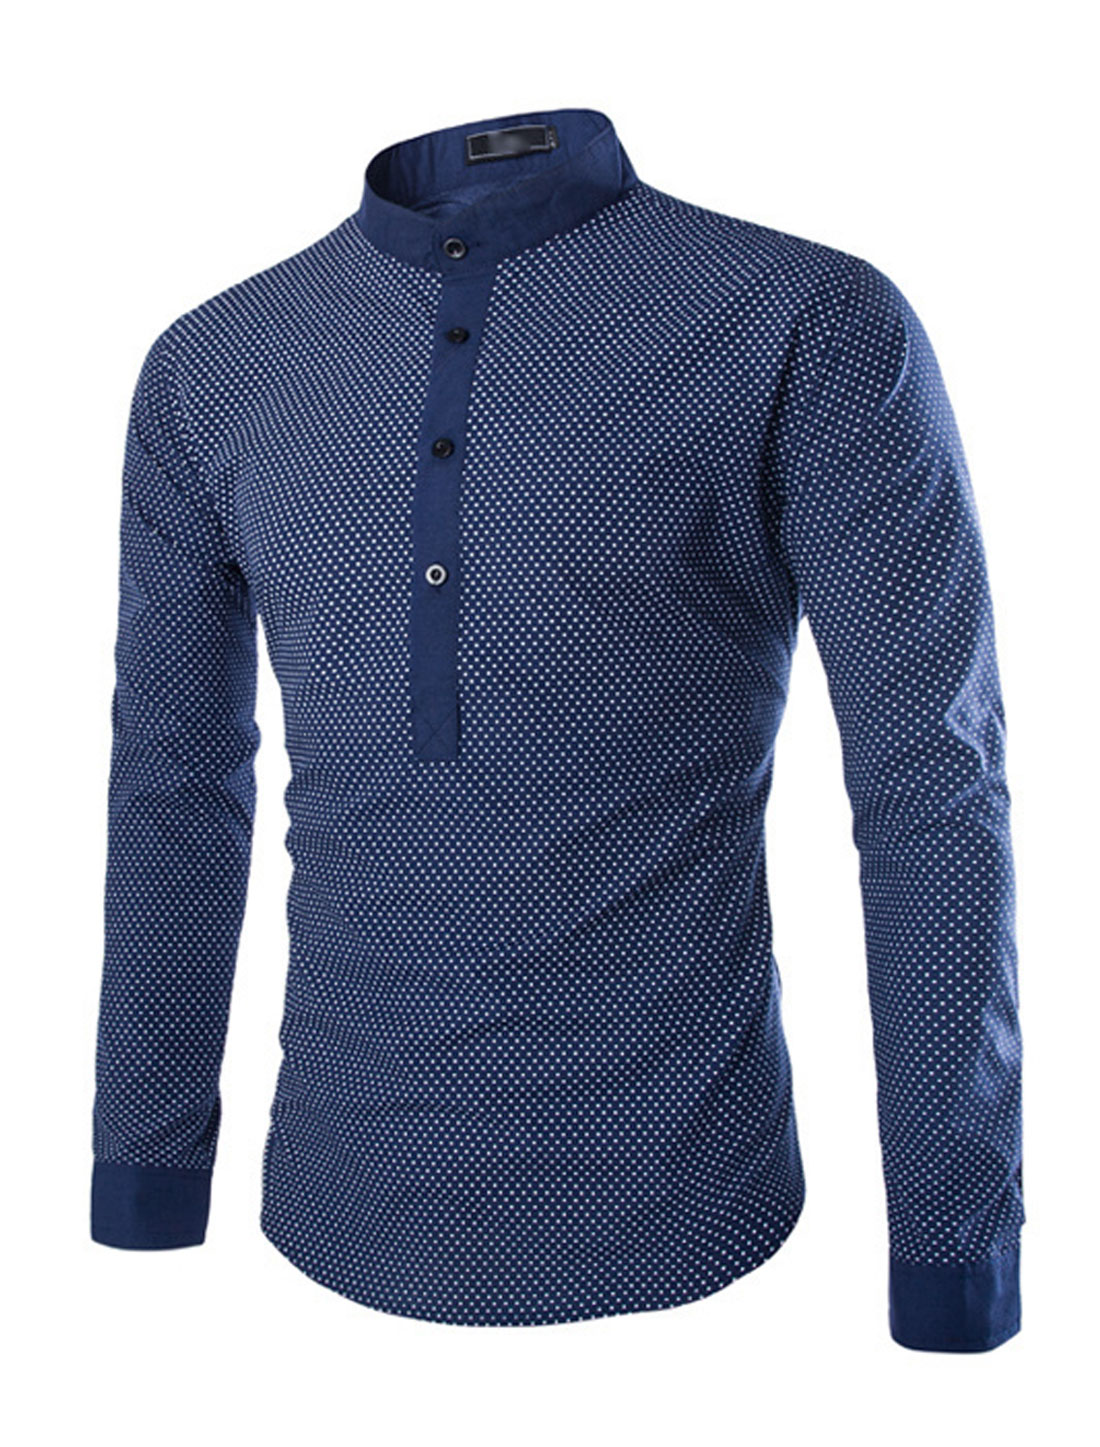 Men Stand Collar Half Placket Dots Leisure Top Navy Blue S